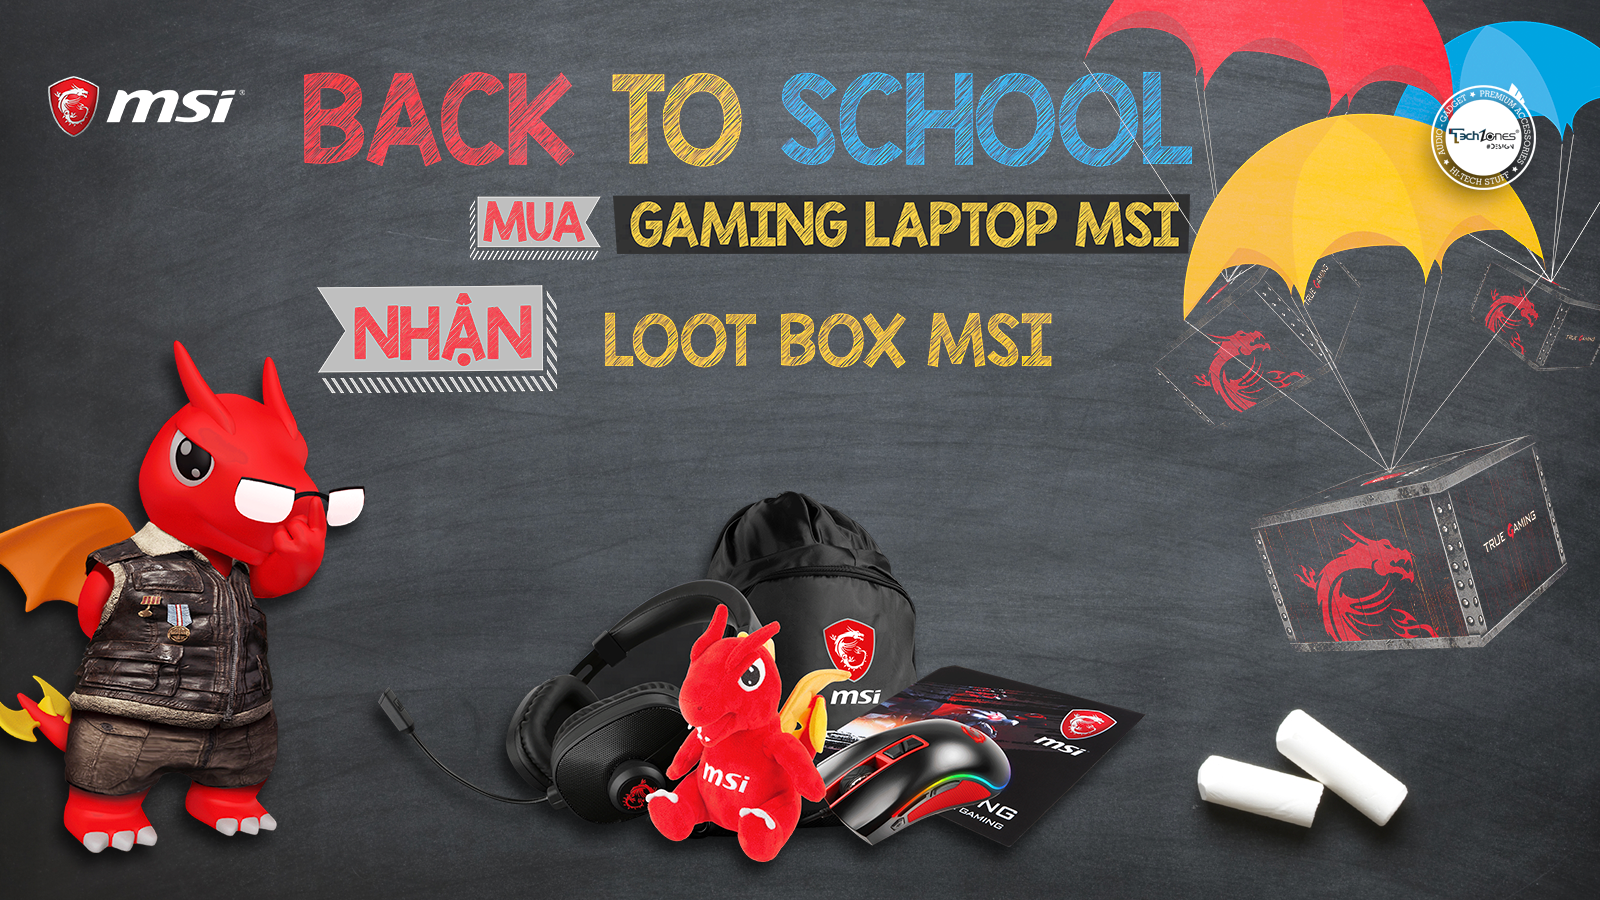 "MSI Back To School ""MUA LAPTOP - SĂN LOOT BOX"""